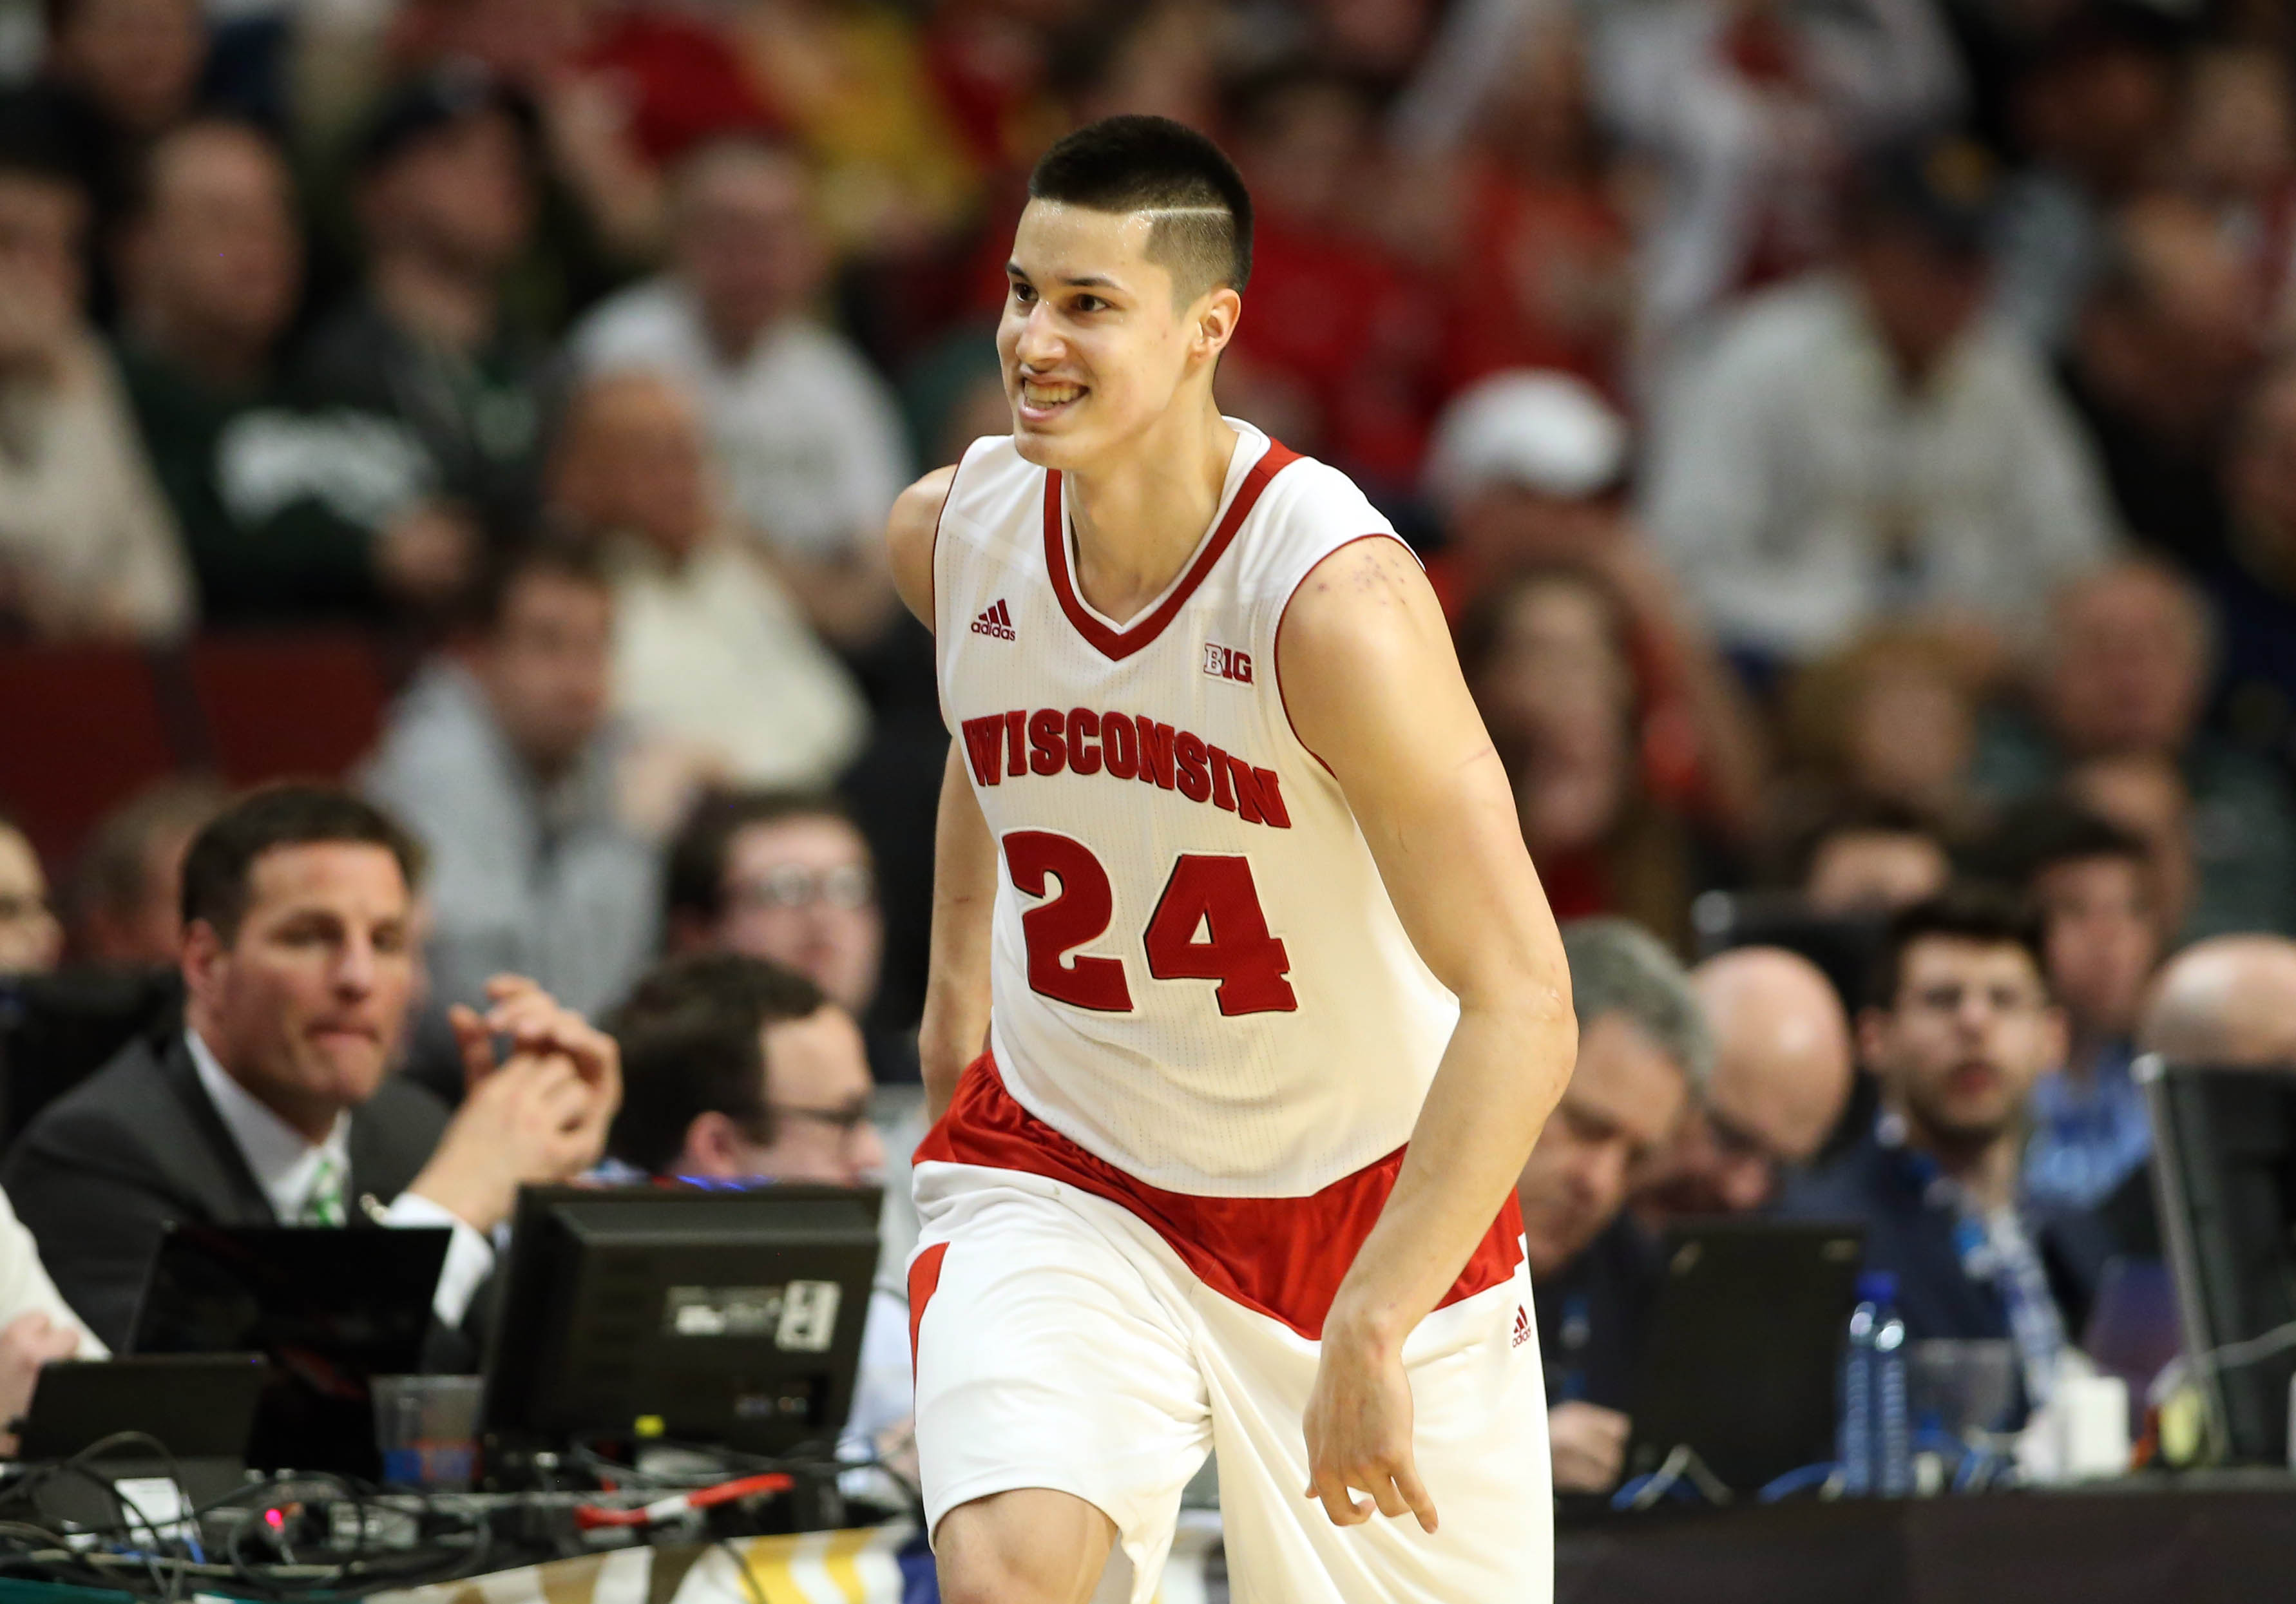 Wisconsin wins 2015 Big Ten Tournament by topping Michigan State in thriller